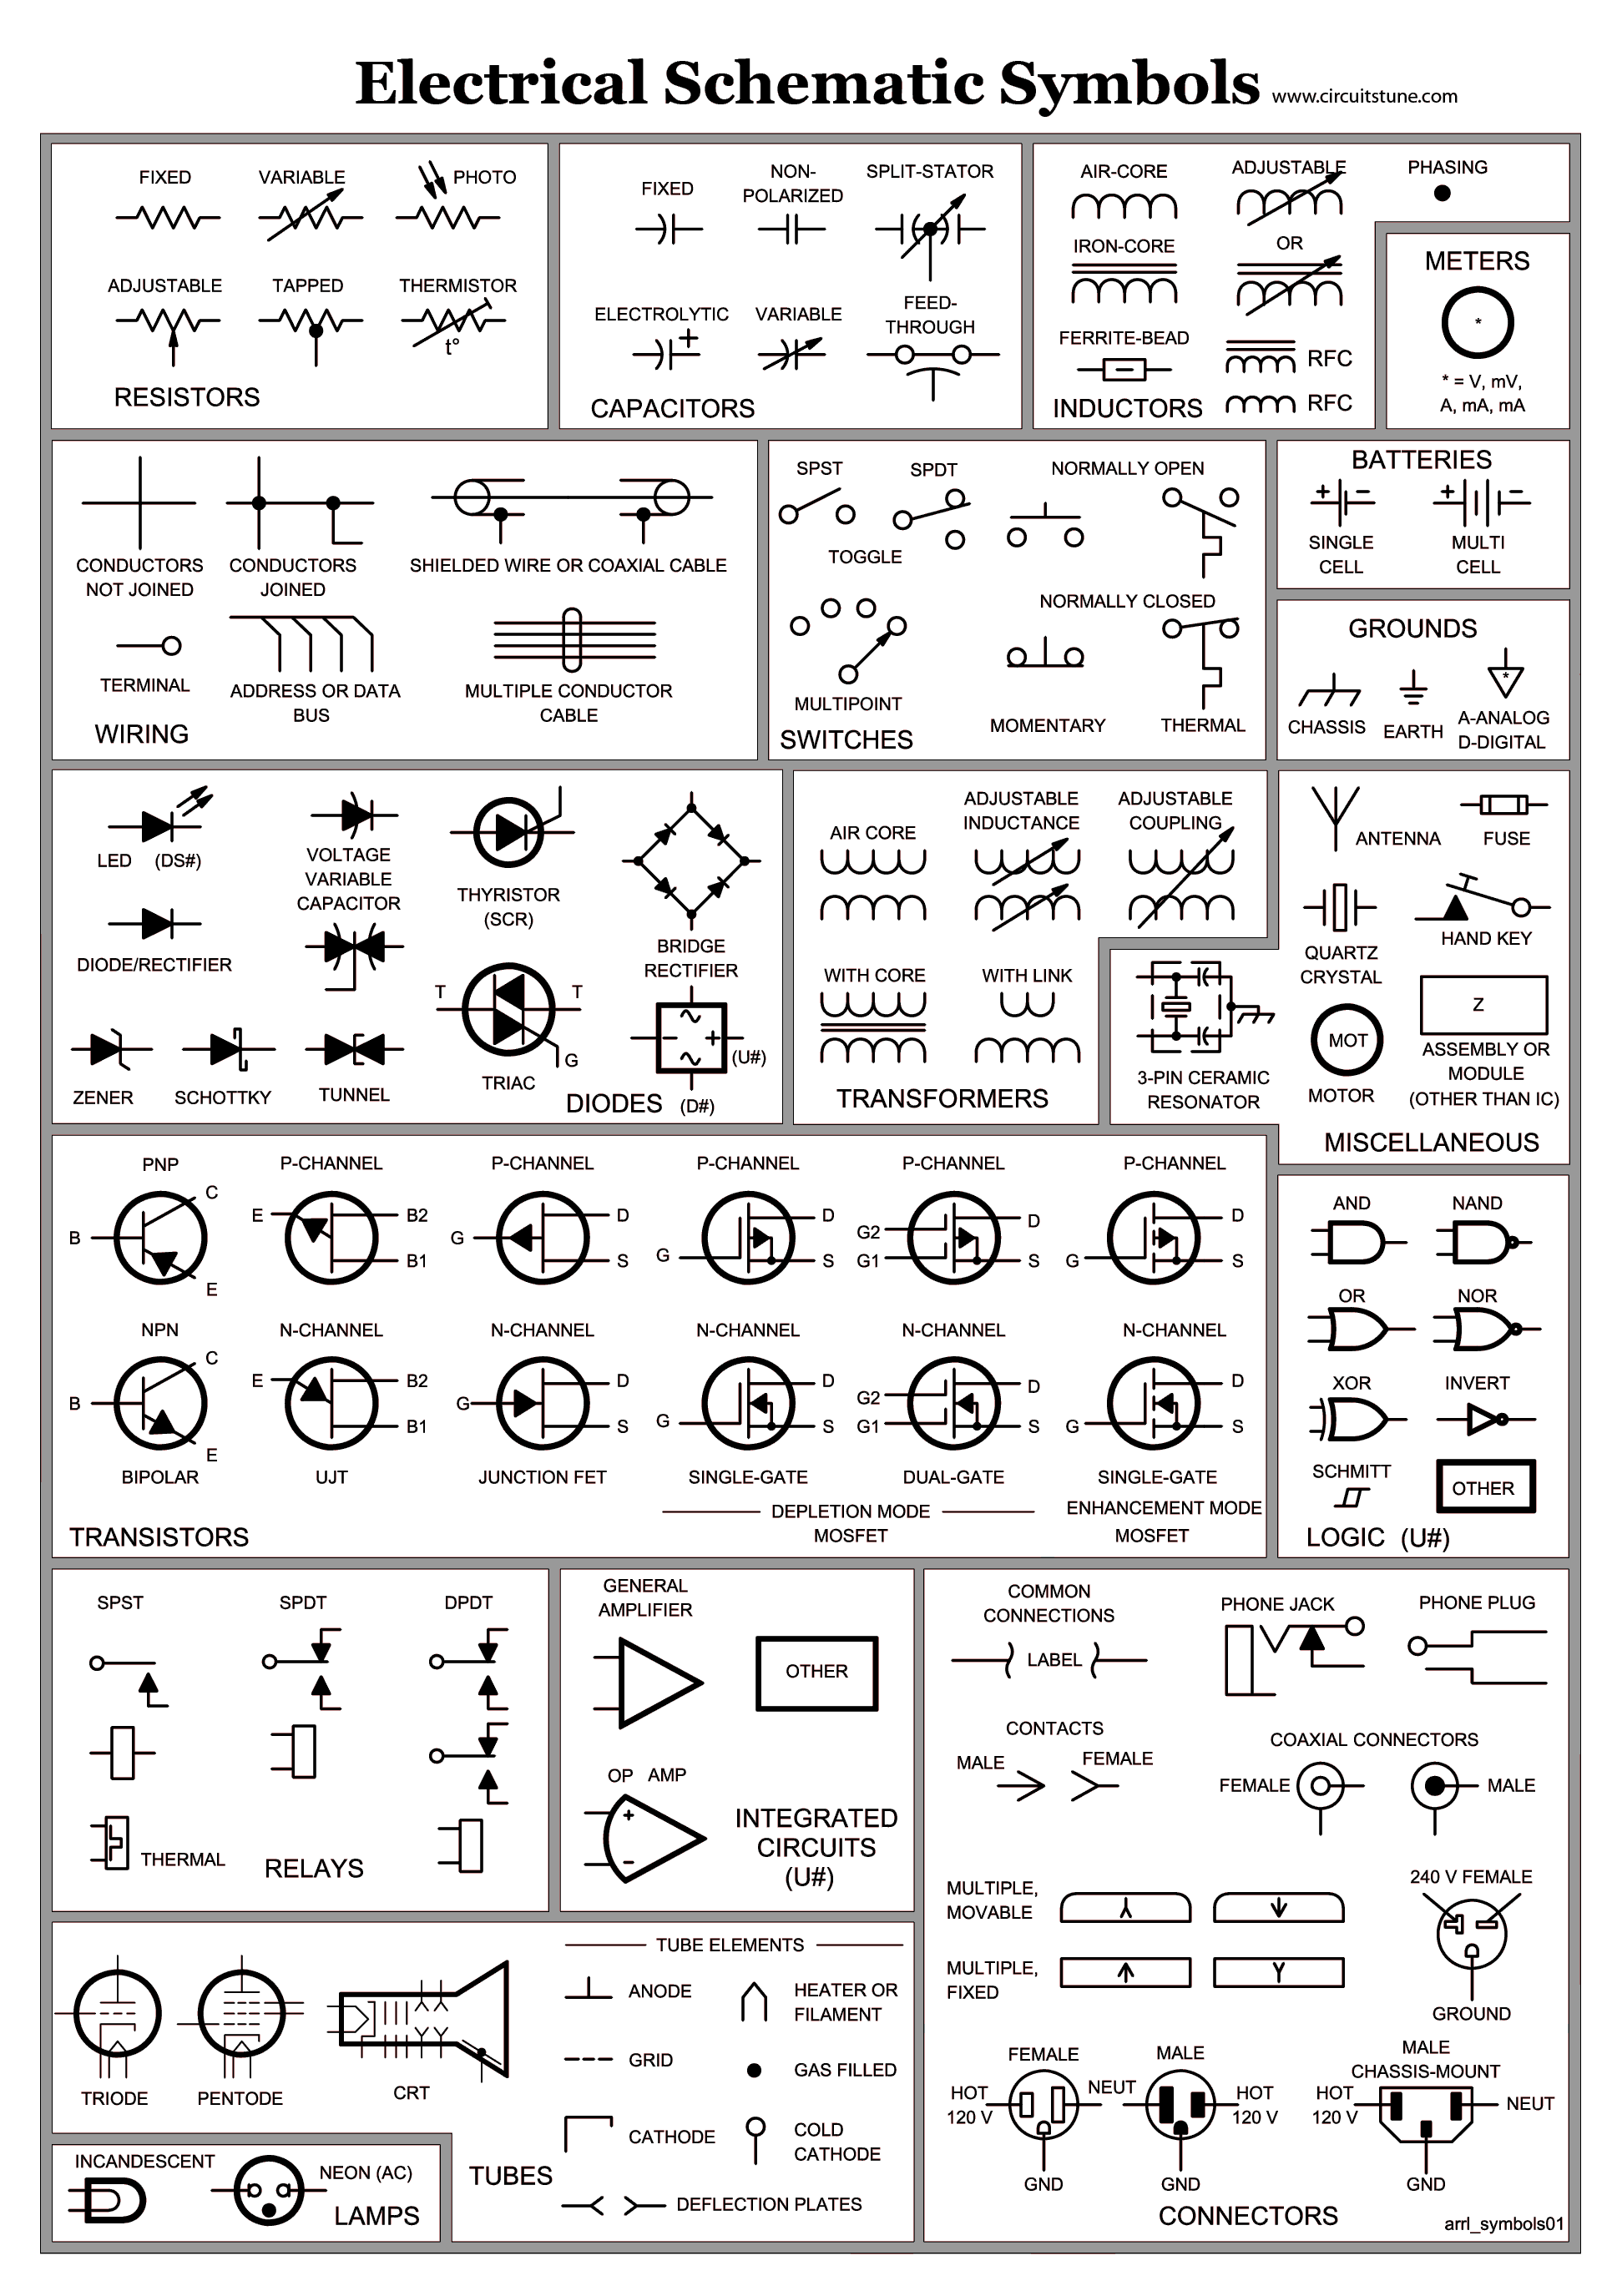 a65d176364692d2ebe913b58a654cfc3 wiring diagram symbols pdf wiring diagram cbr \u2022 wiring diagrams how to read automotive wiring diagrams pdf at bakdesigns.co